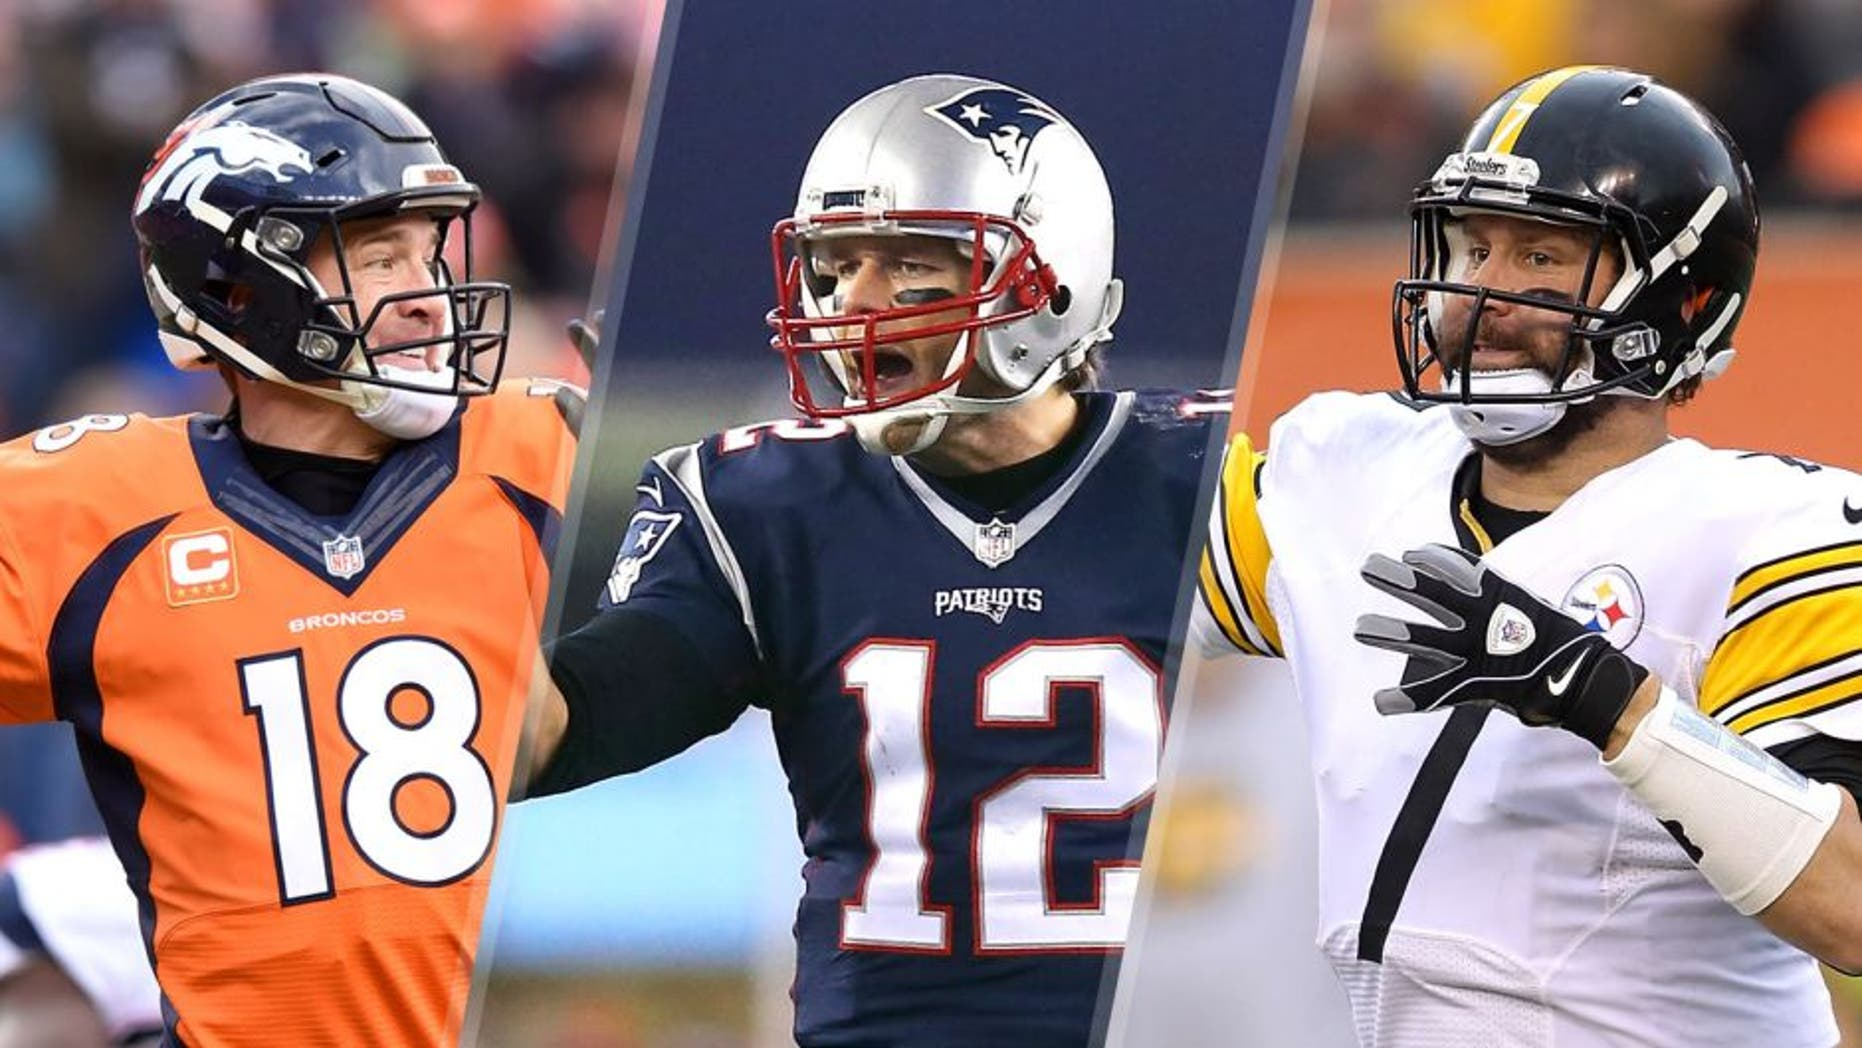 Broncos quarterback Peyton Manning throws during the fourth quarter of the AFC Championship game on Sunday, Jan. 24, 2016, at Sports Authority Field at Mile High in Denver. (Mark Reis/Colorado Springs Gazette/TNS via Getty Images), FOXBORO, MA - JANUARY 16: Tom Brady #12 of the New England Patriots gestures after a play in the fourth quarter against the Kansas City Chiefs during the AFC Divisional Playoff Game at Gillette Stadium on January 16, 2016 in Foxboro, Massachusetts. (Photo by Maddie Meyer/Getty Images), CINCINNATI, OH - DECEMBER 13: Ben Roethlisberger #7 of the Pittsburgh Steelers throws a pass during the third quarter of the game against the Cincinnati Bengals at Paul Brown Stadium on December 13, 2015 in Cincinnati, Ohio. (Photo by John Grieshop/Getty Images)